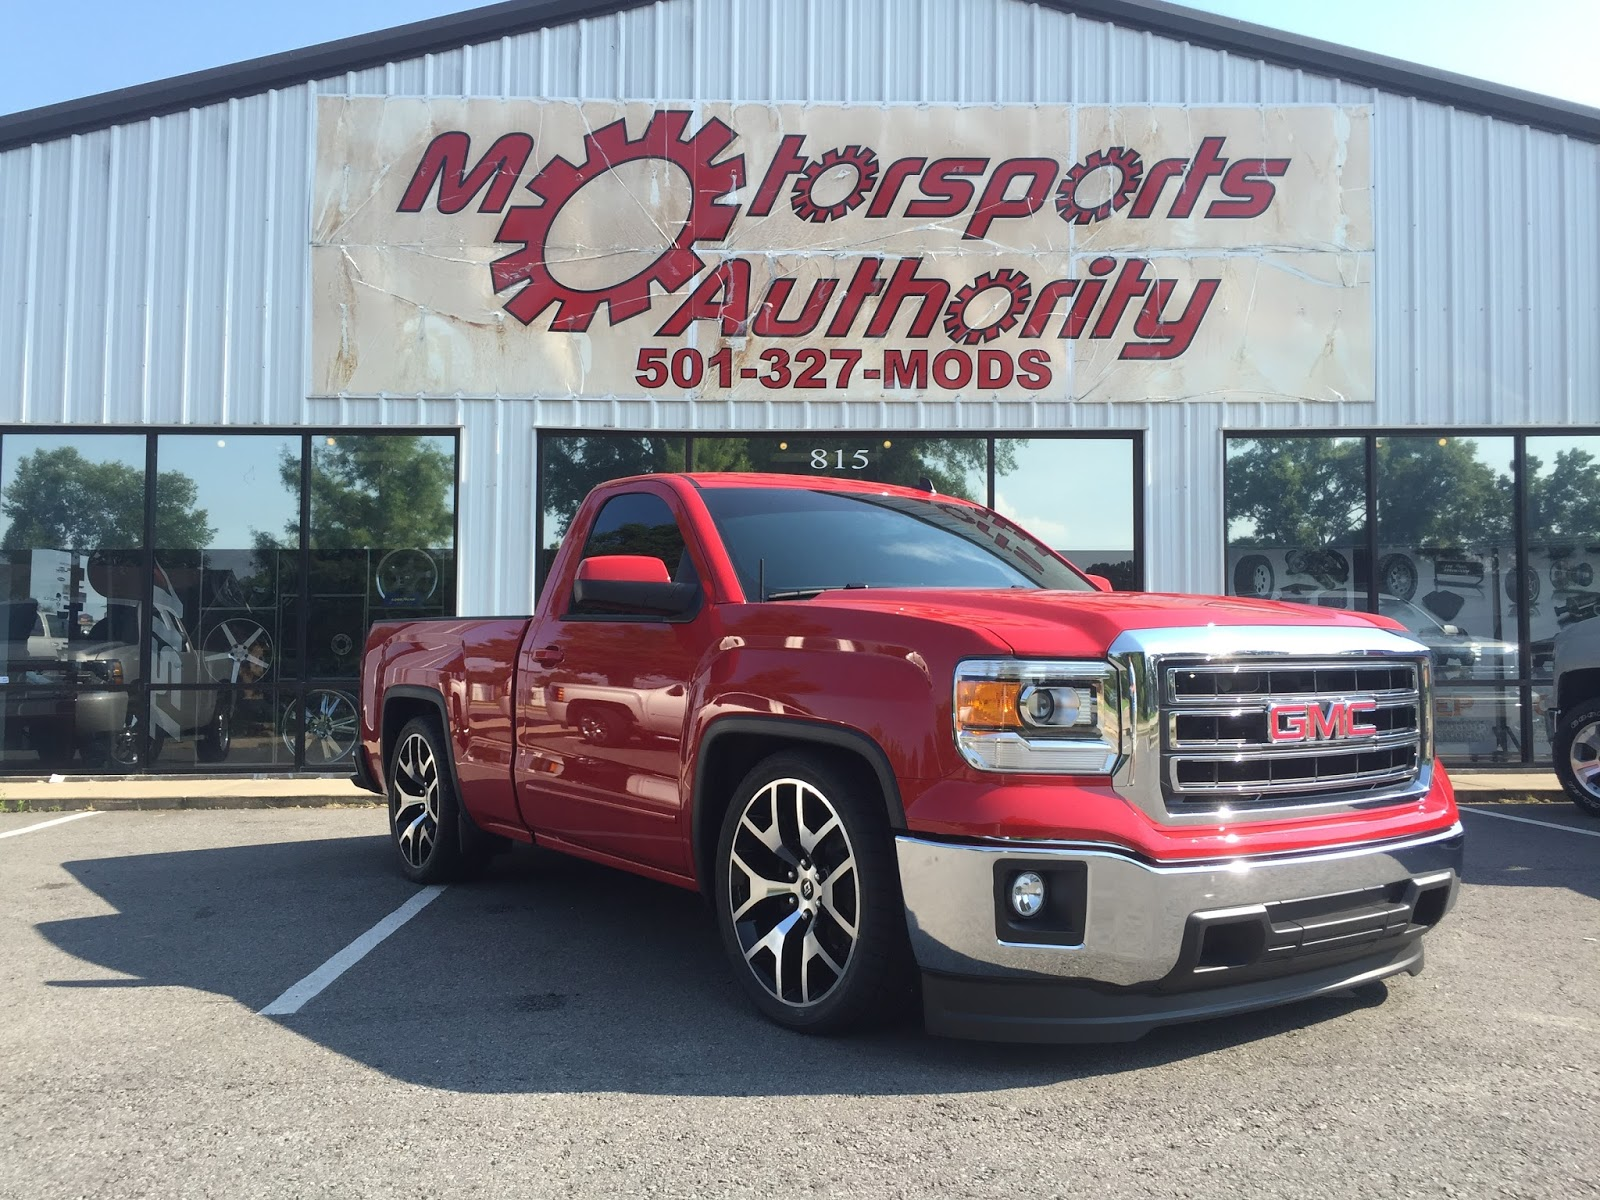 Motorsports authority msa 2015 chevrolet silverados lifted 2015 chevrolet silverados lifted and lowered sciox Image collections